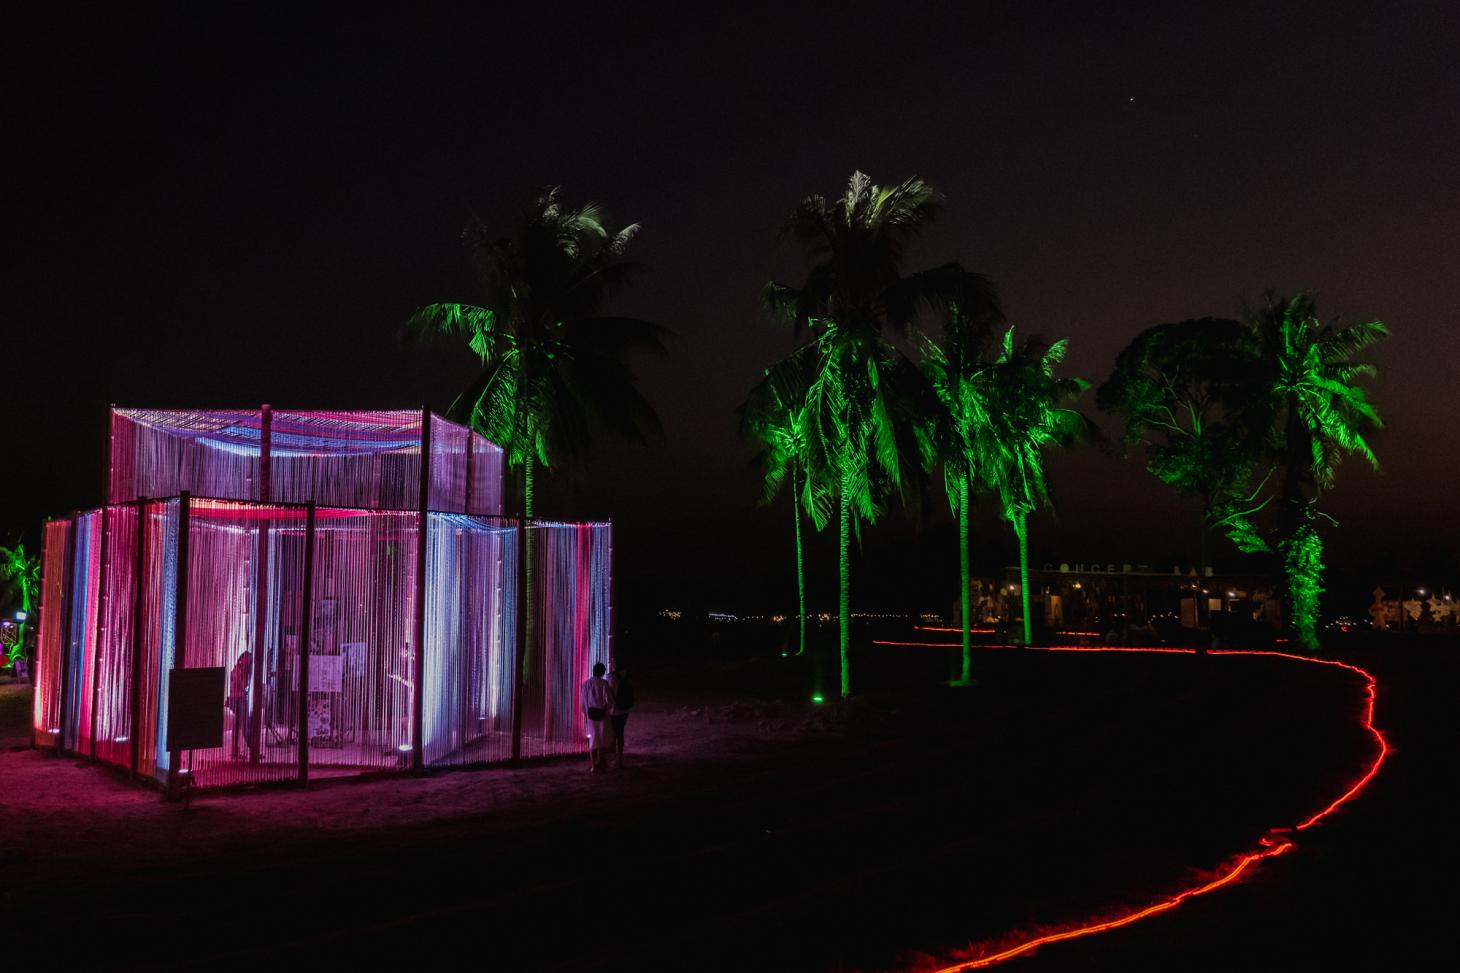 The Woven Pavilion by night